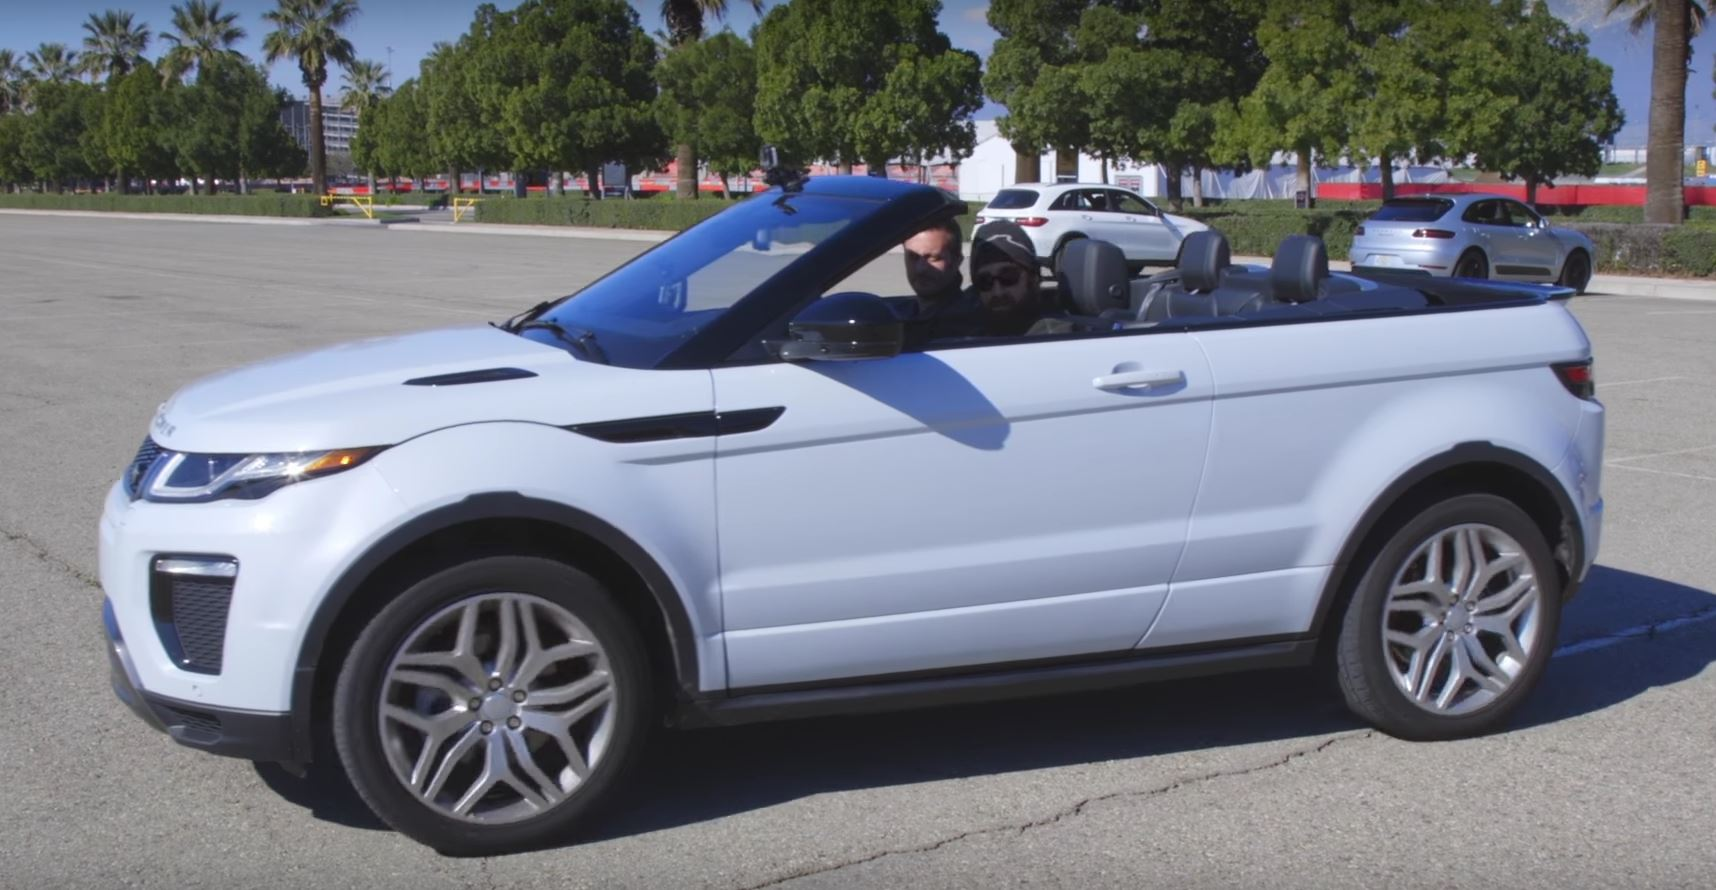 just two men driving an evoque convertible arguing it 39 s like the classic suvs autoevolution. Black Bedroom Furniture Sets. Home Design Ideas